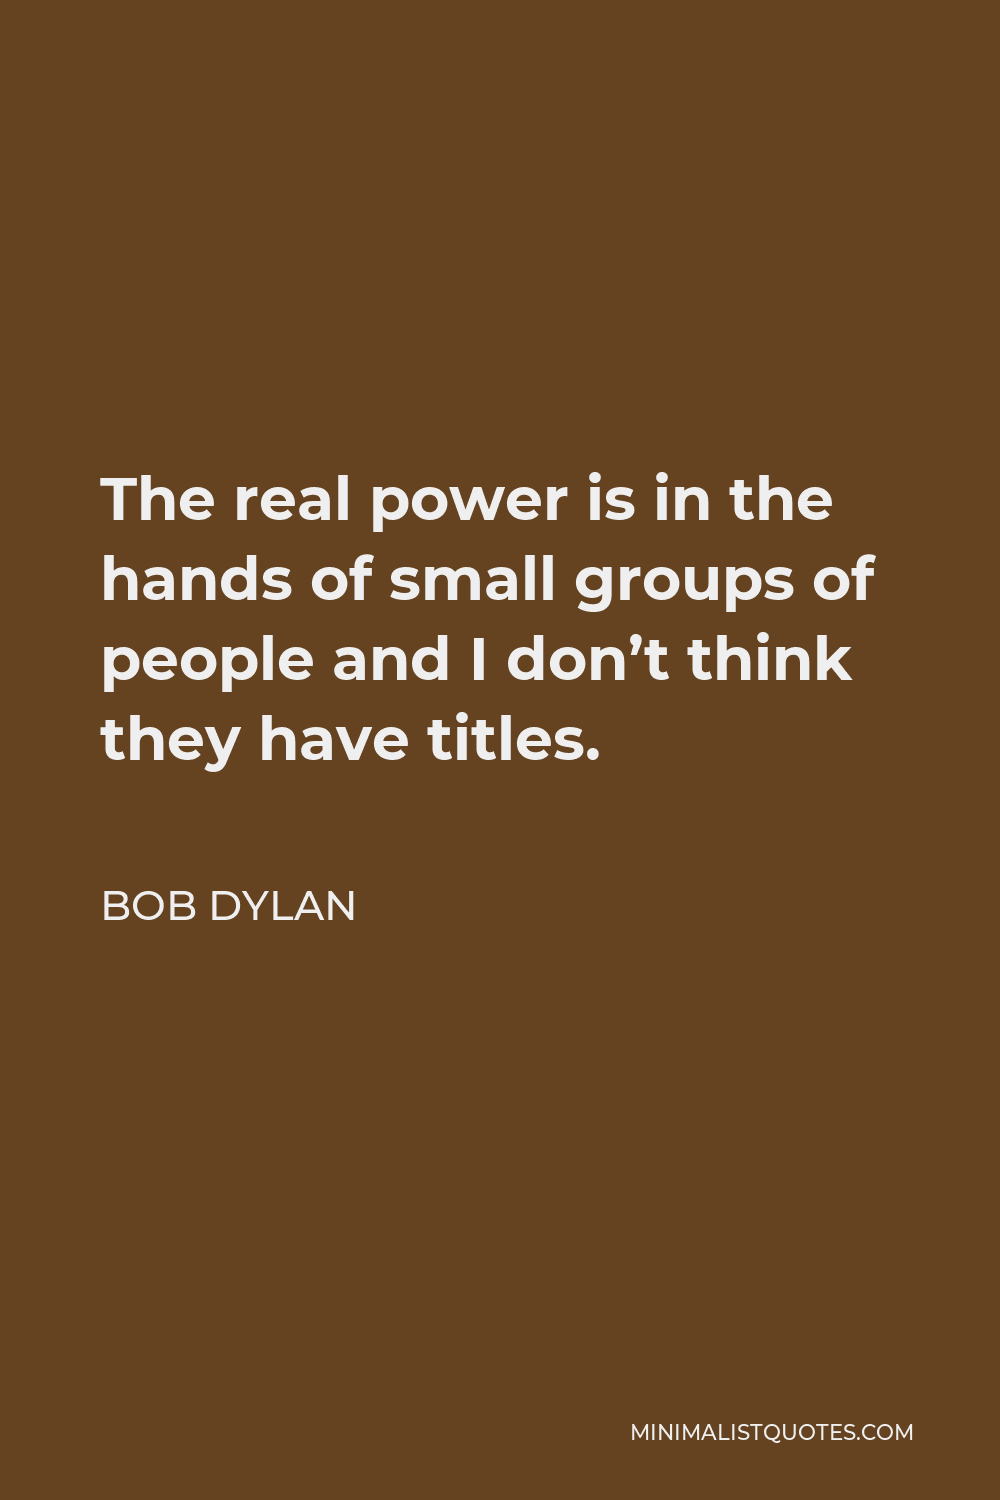 Bob Dylan Quote - The real power is in the hands of small groups of people and I don't think they have titles.